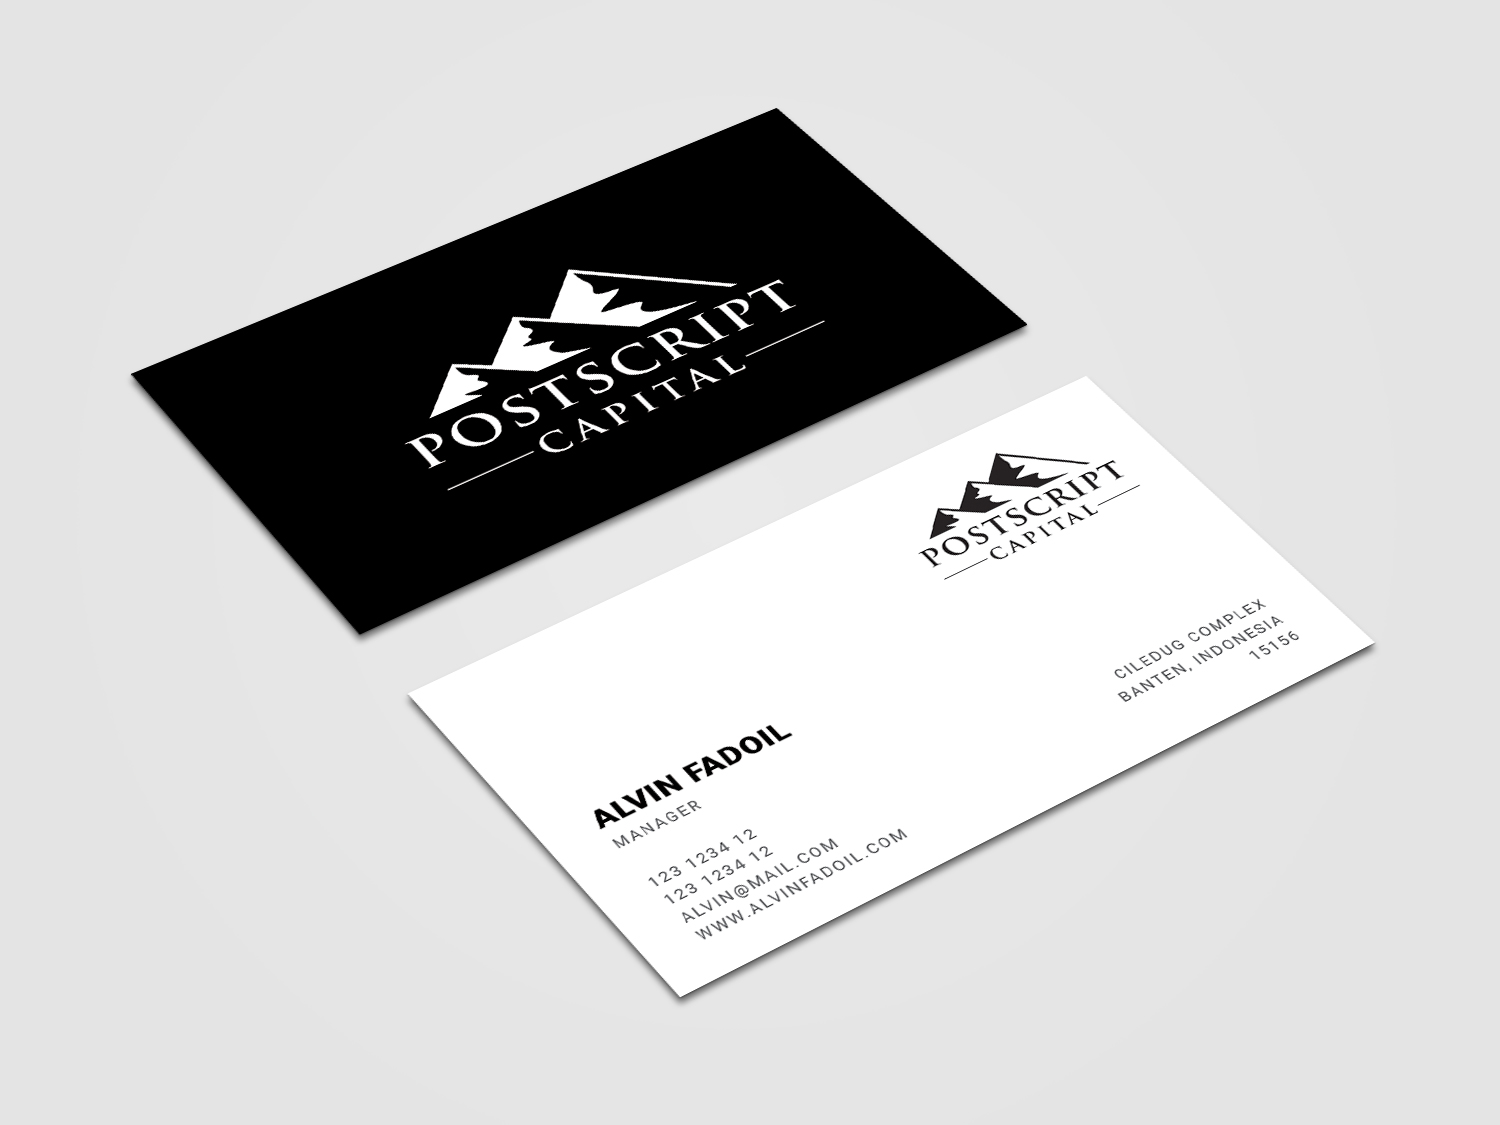 Masculine conservative finance business card design for a company business card design by alvinfadoil for this project design 14614842 reheart Image collections